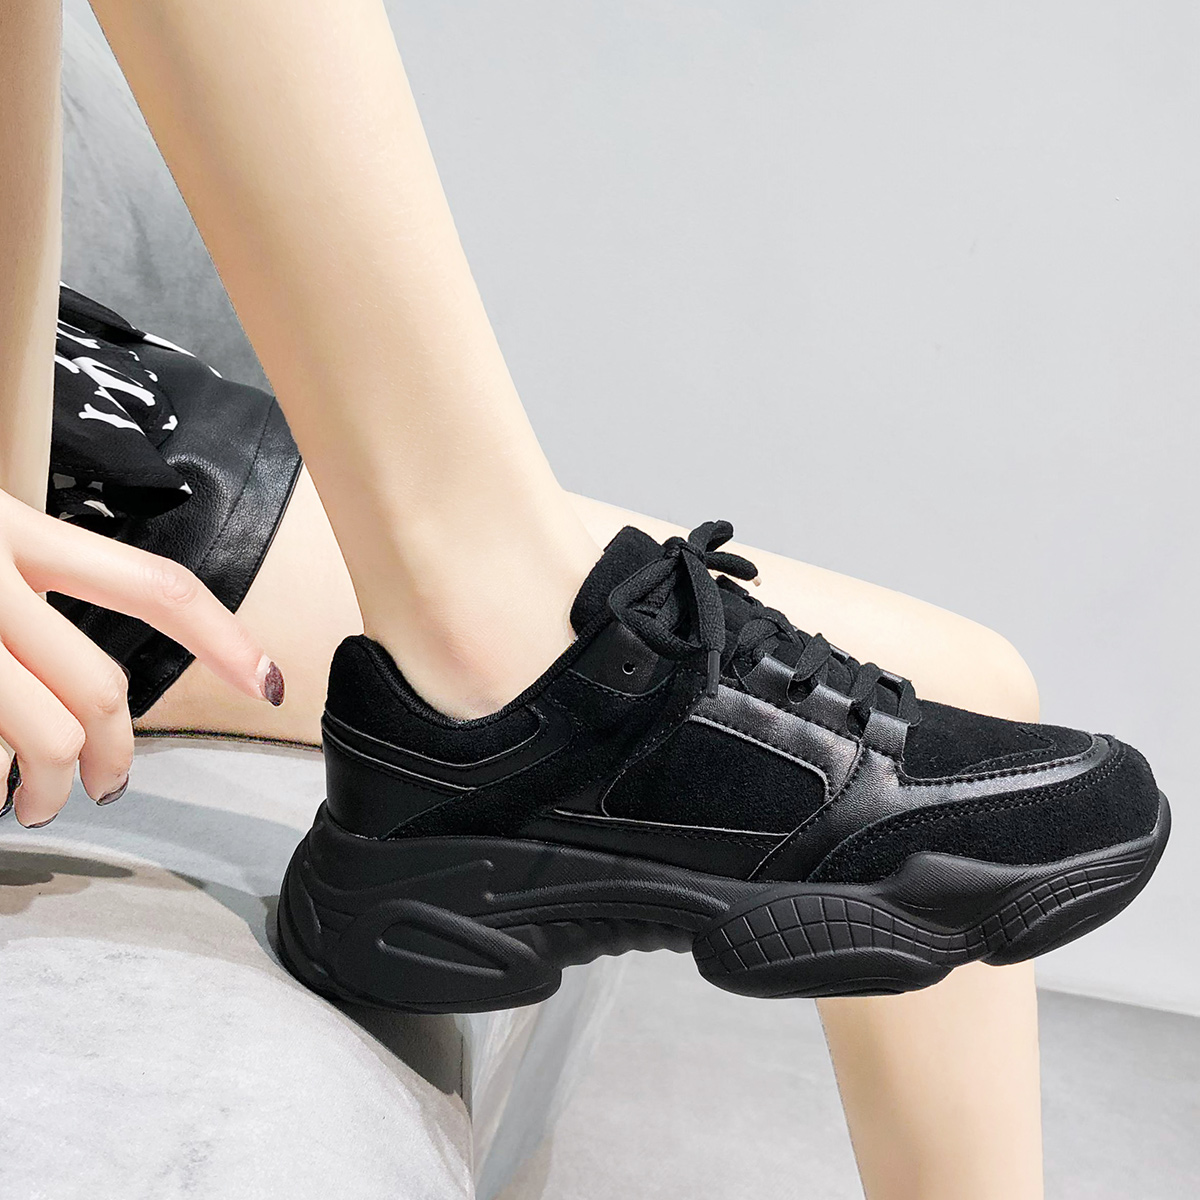 Platform Women Sneakers White 2021 Spring Sport Thick Sole Lady Leisure Shoes Lace Up Comfortable Female Chunky Sneakers Fashion